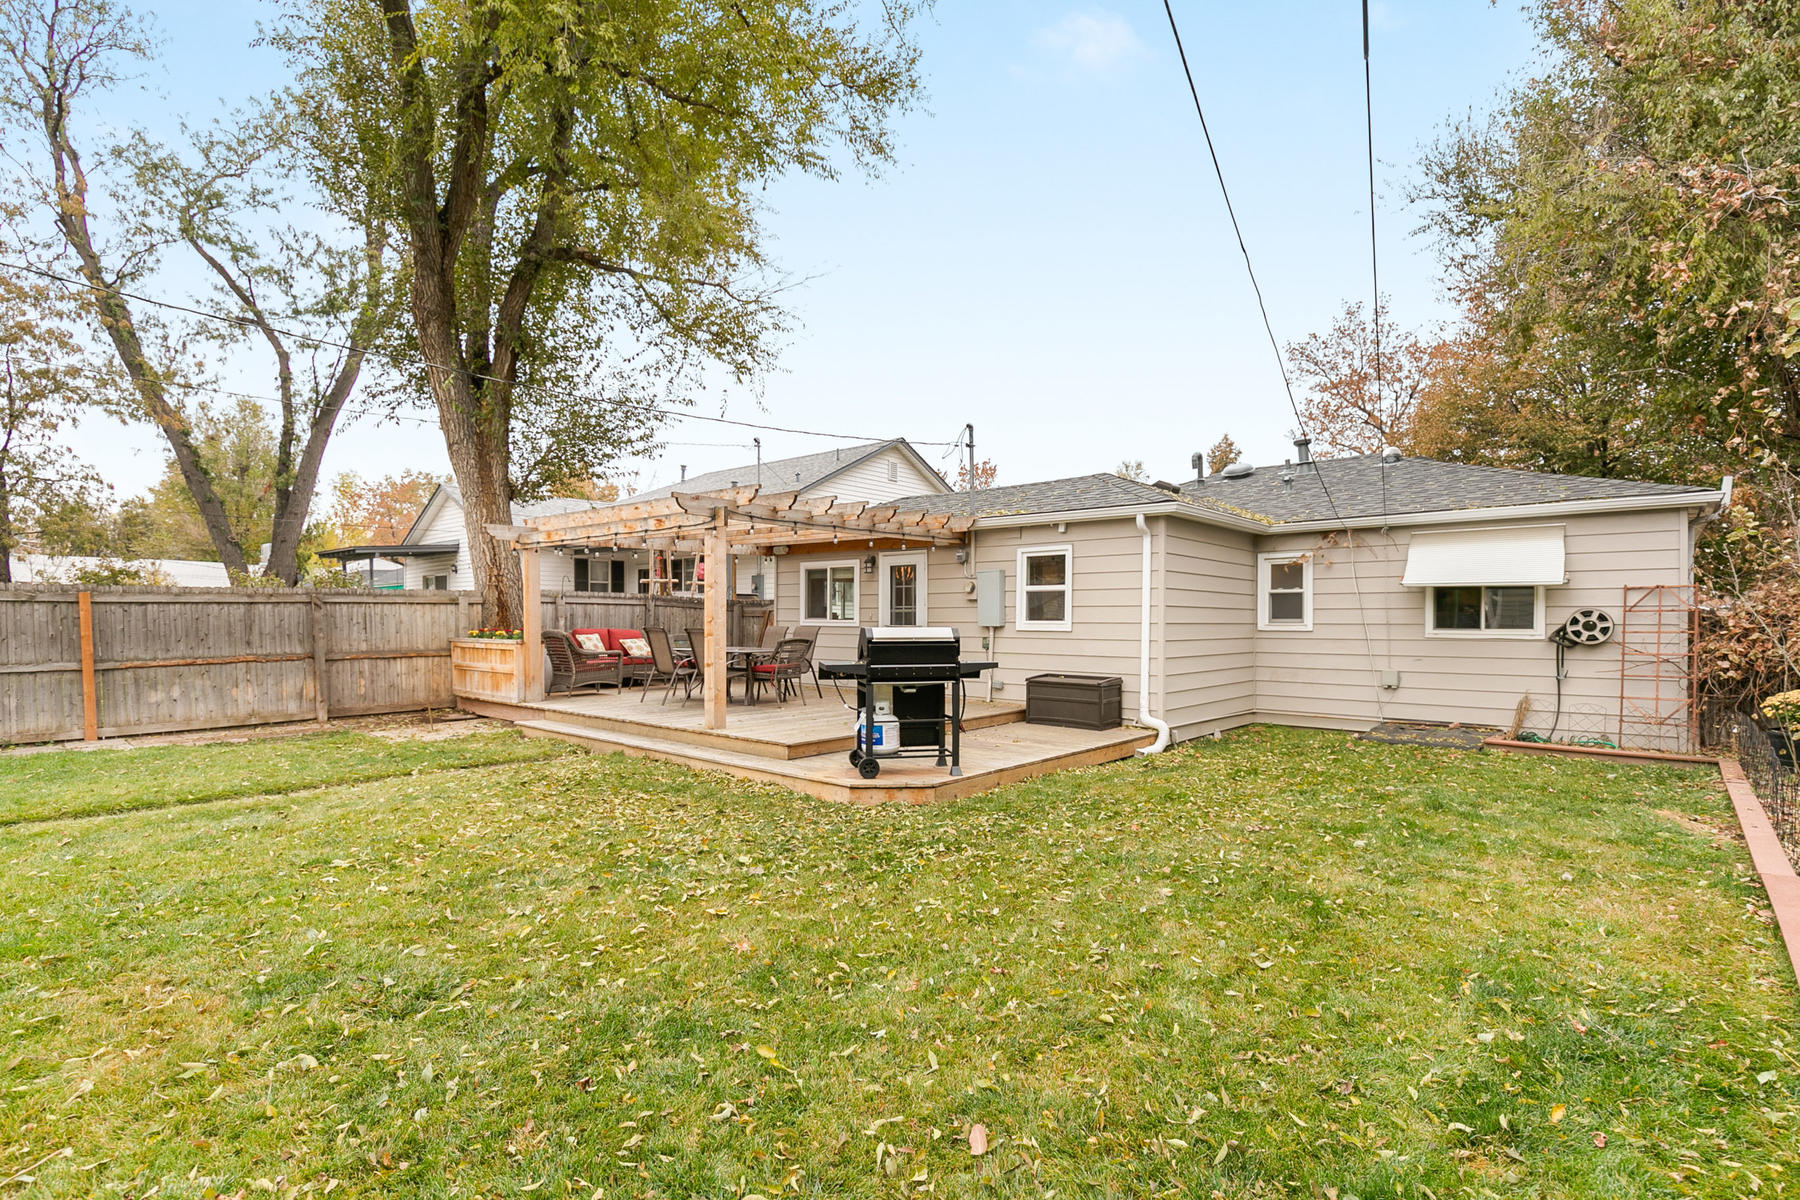 4216 s Sherman St Englewood CO-028-31-28-MLS_Size.jpg